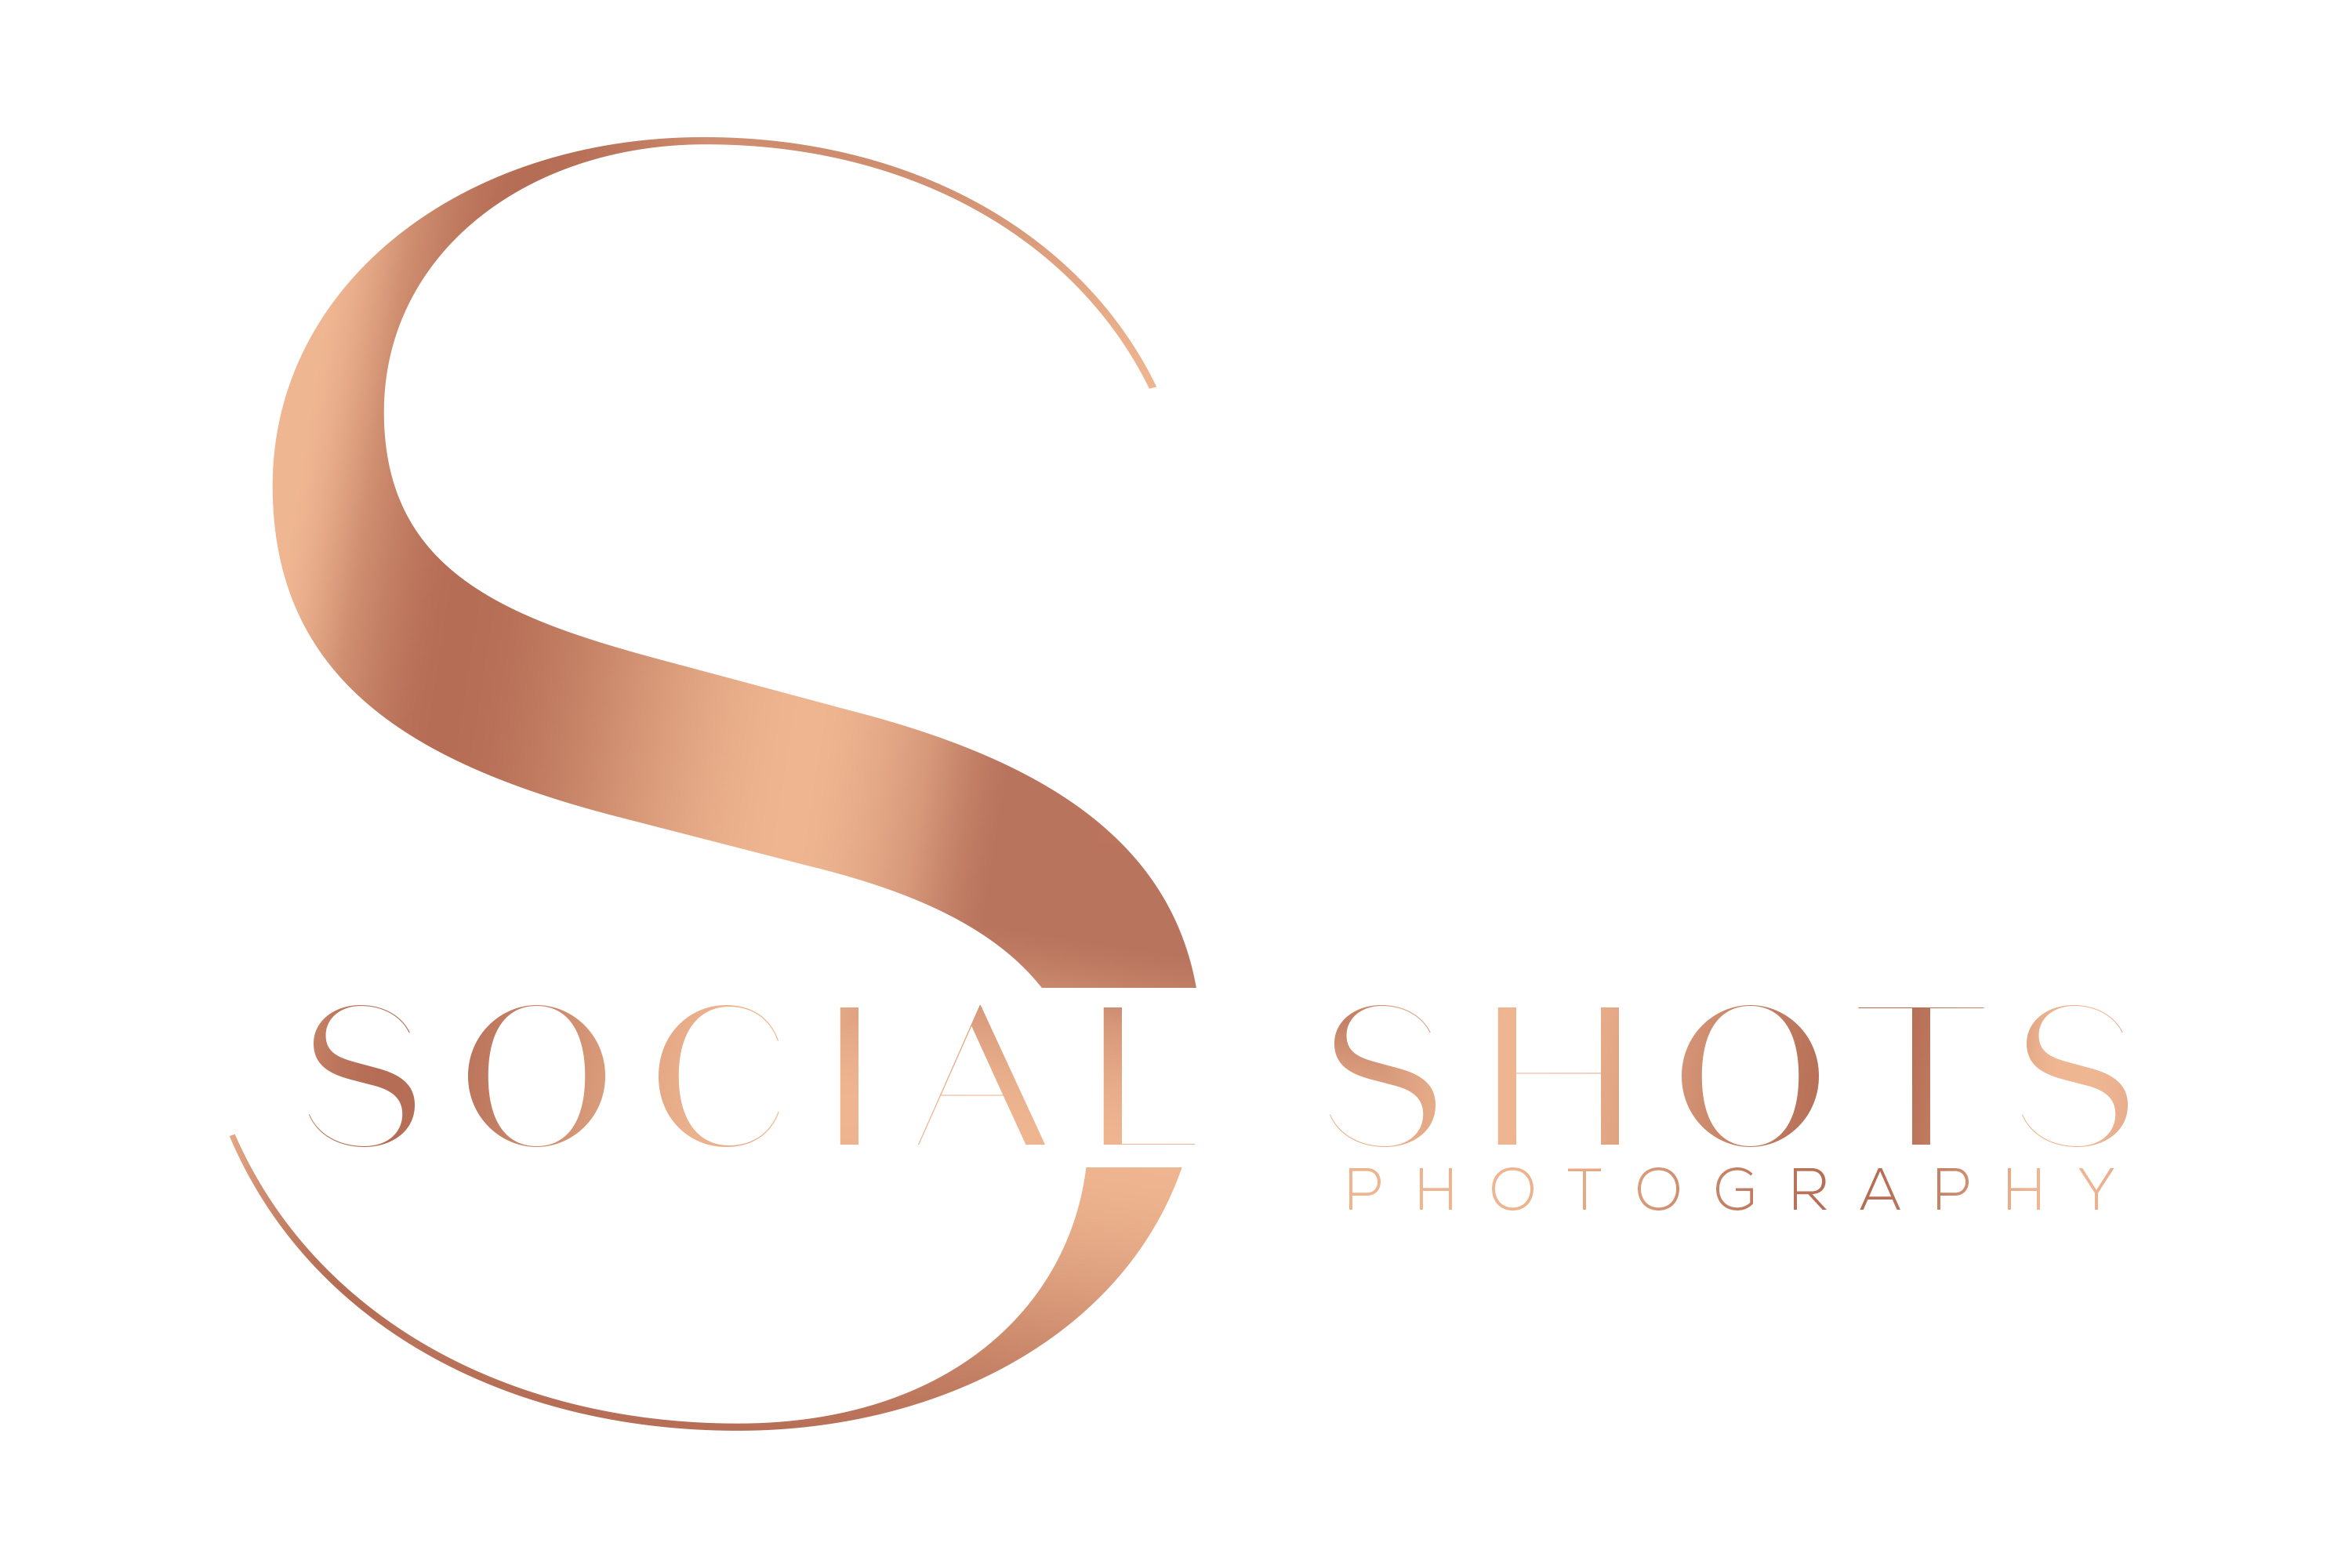 Social Shots Photography